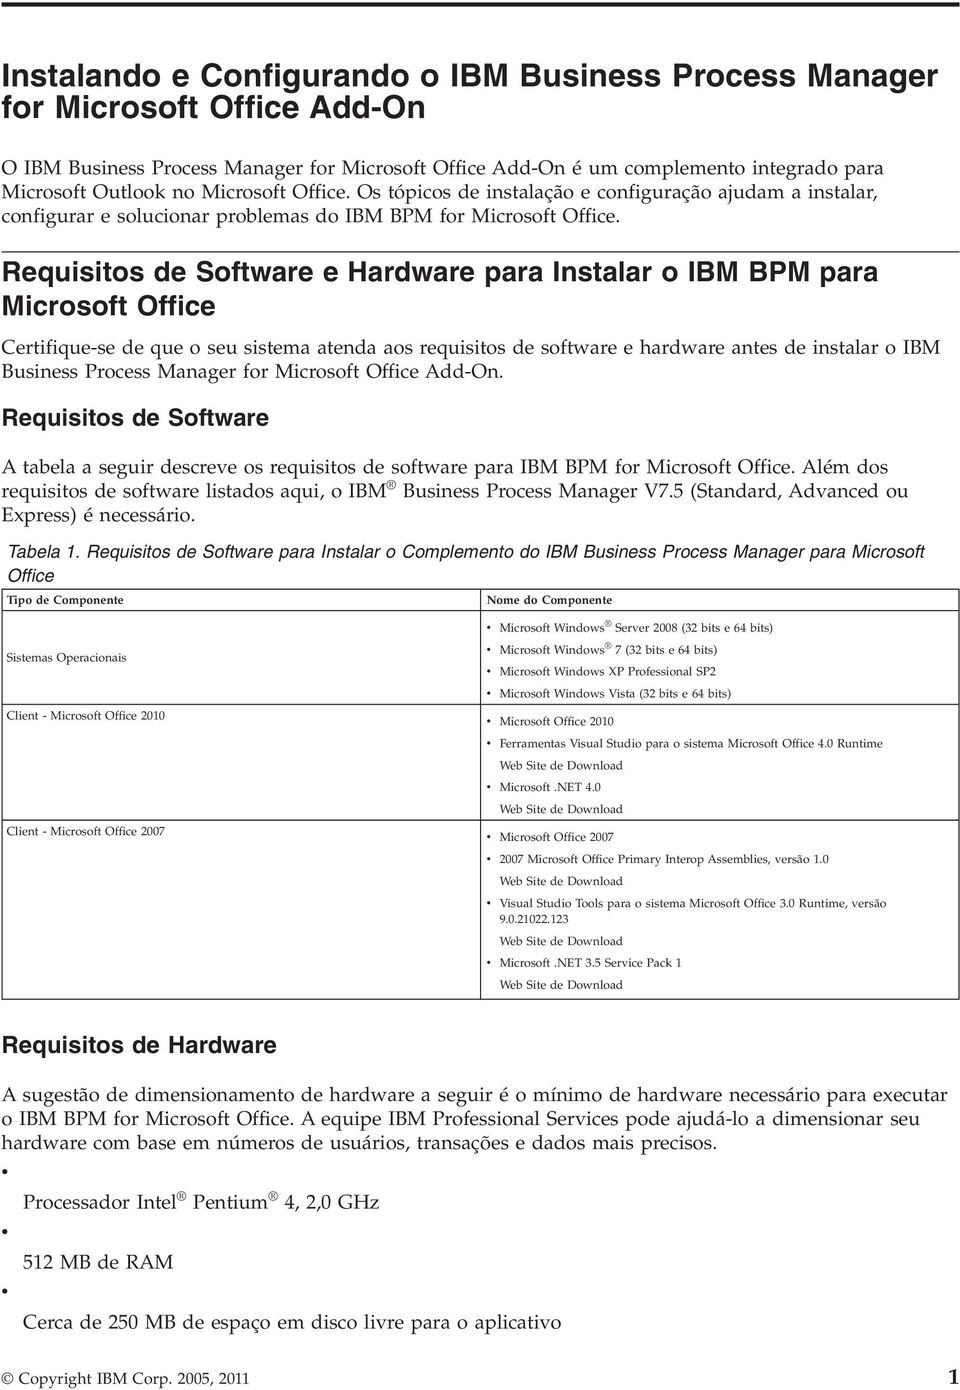 Requisitos de Software e Hardware para Instalar o IBM BPM para Microsoft Office Certifique-se de que o seu sistema atenda aos requisitos de software e hardware antes de instalar o IBM Business